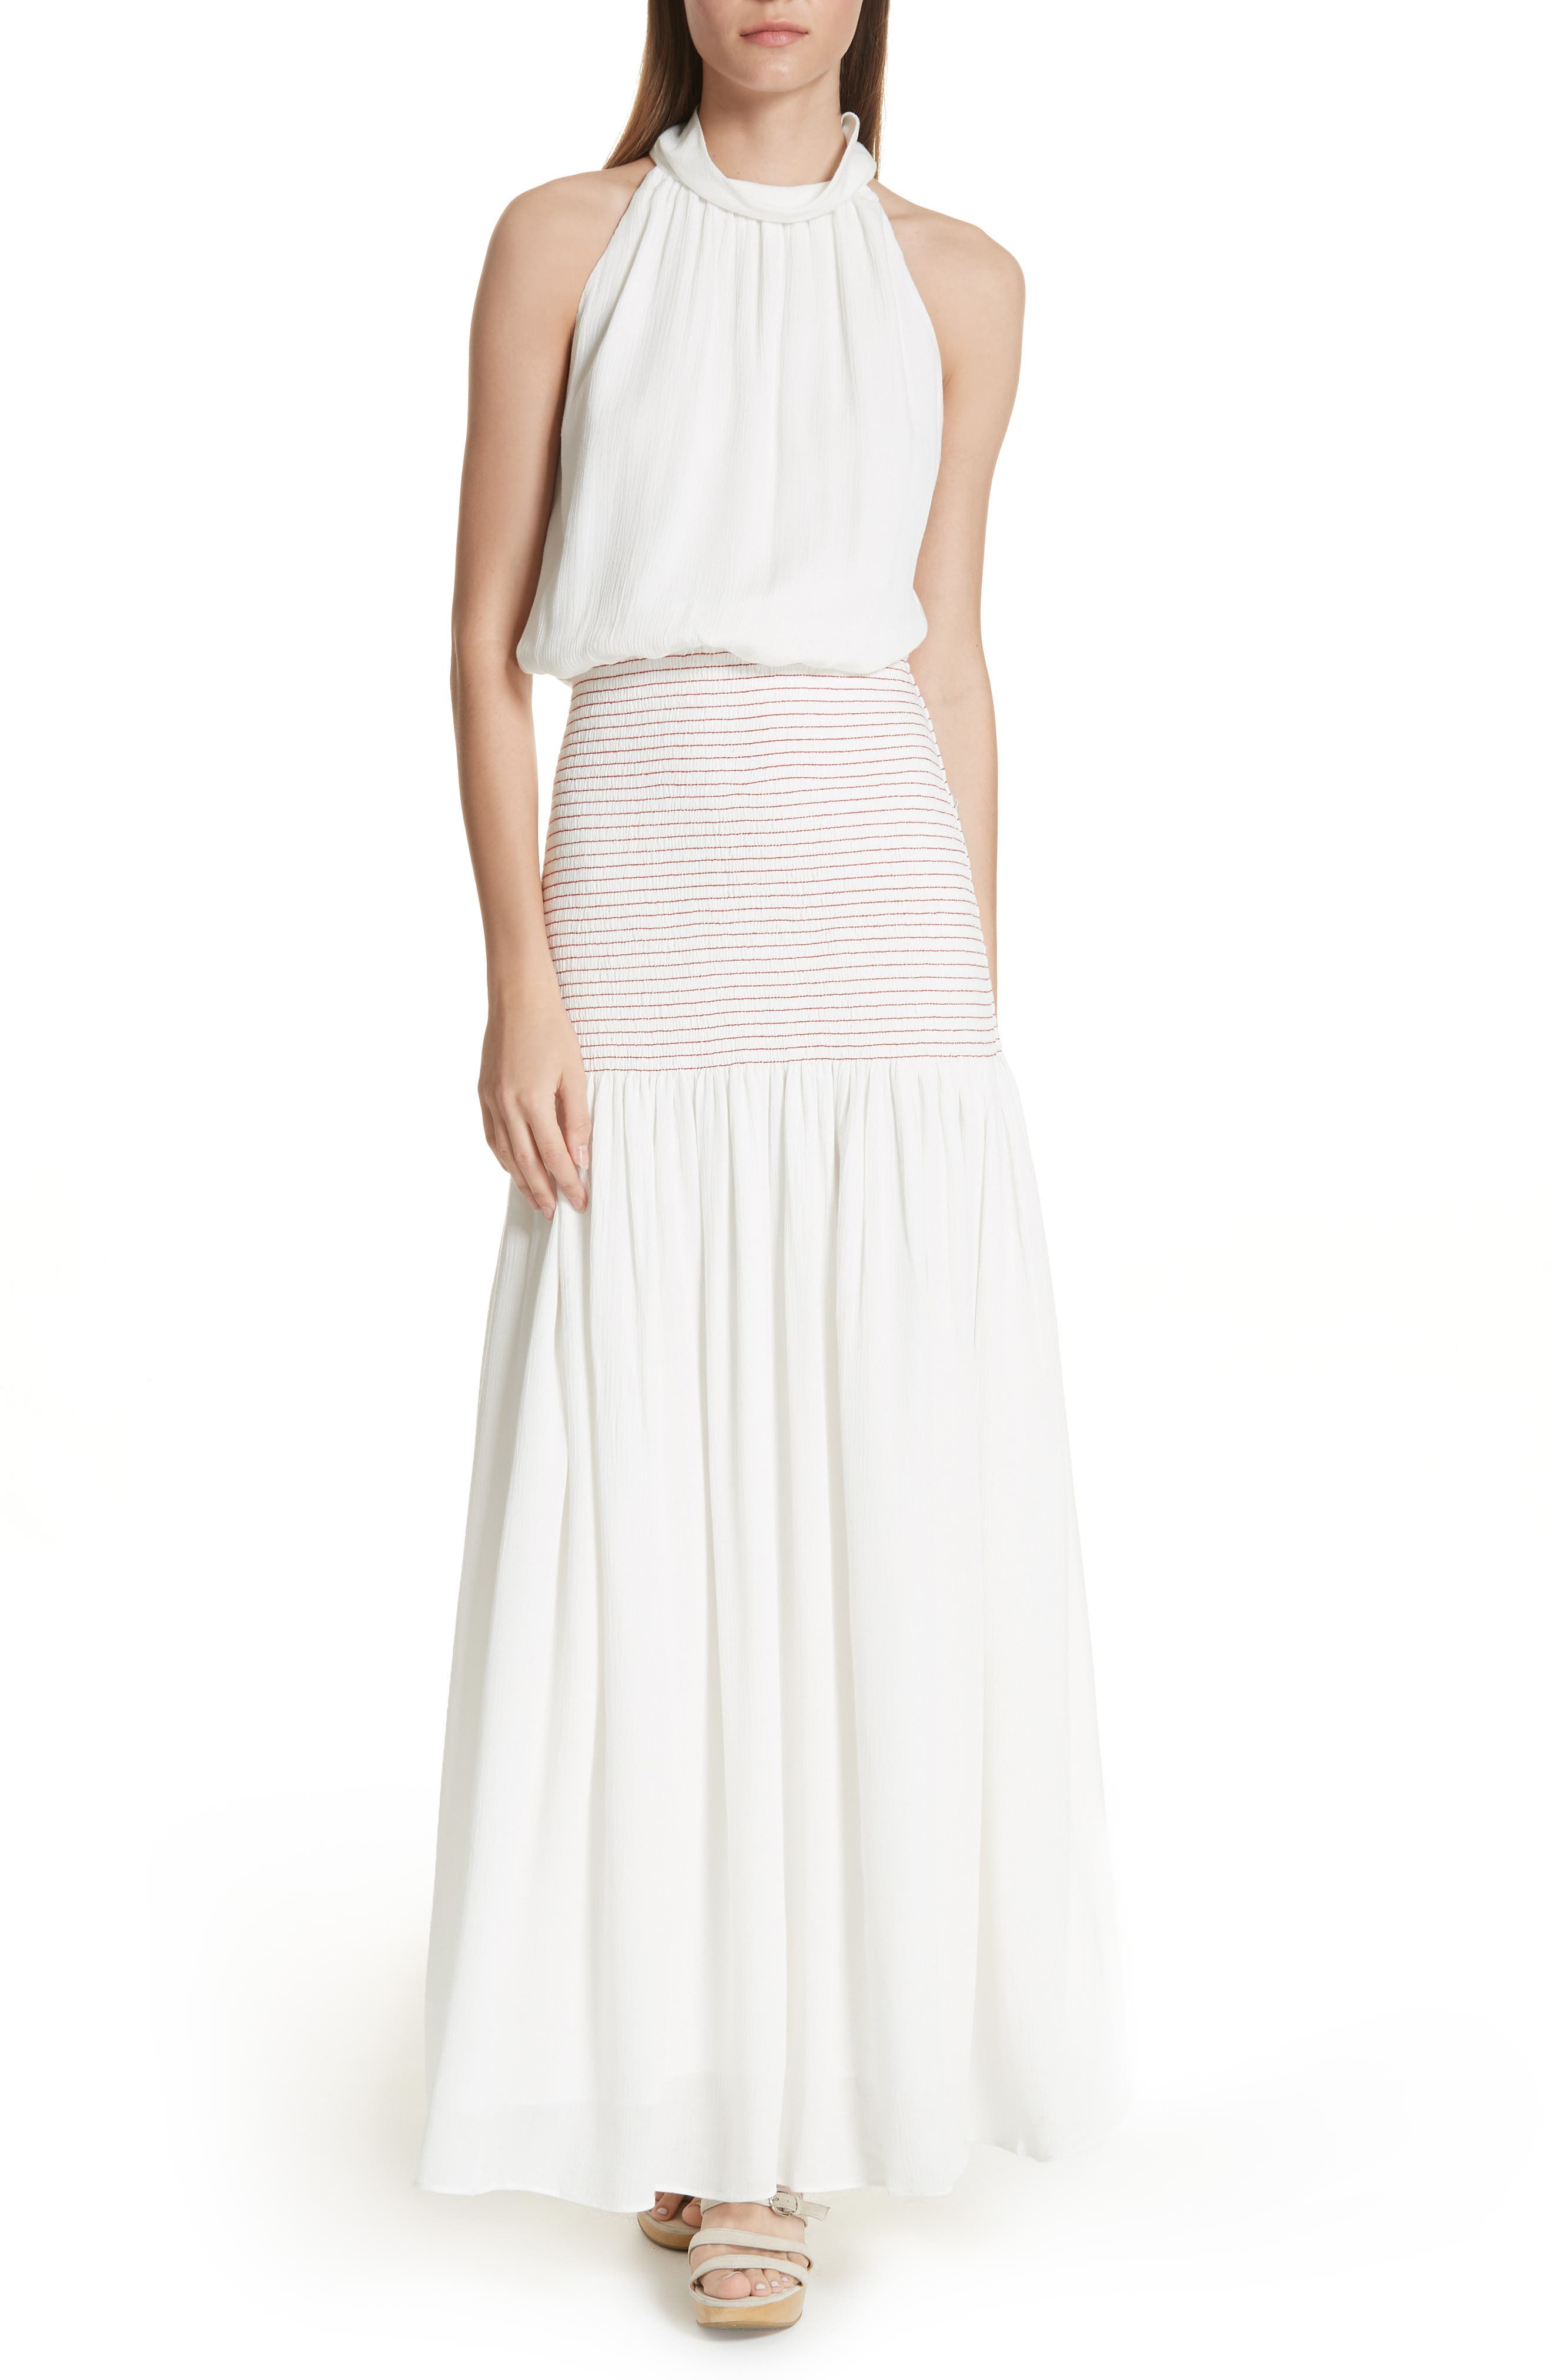 Festa Smocked Panel Maxi Dress,                             Main thumbnail 1, color,                             WHITE